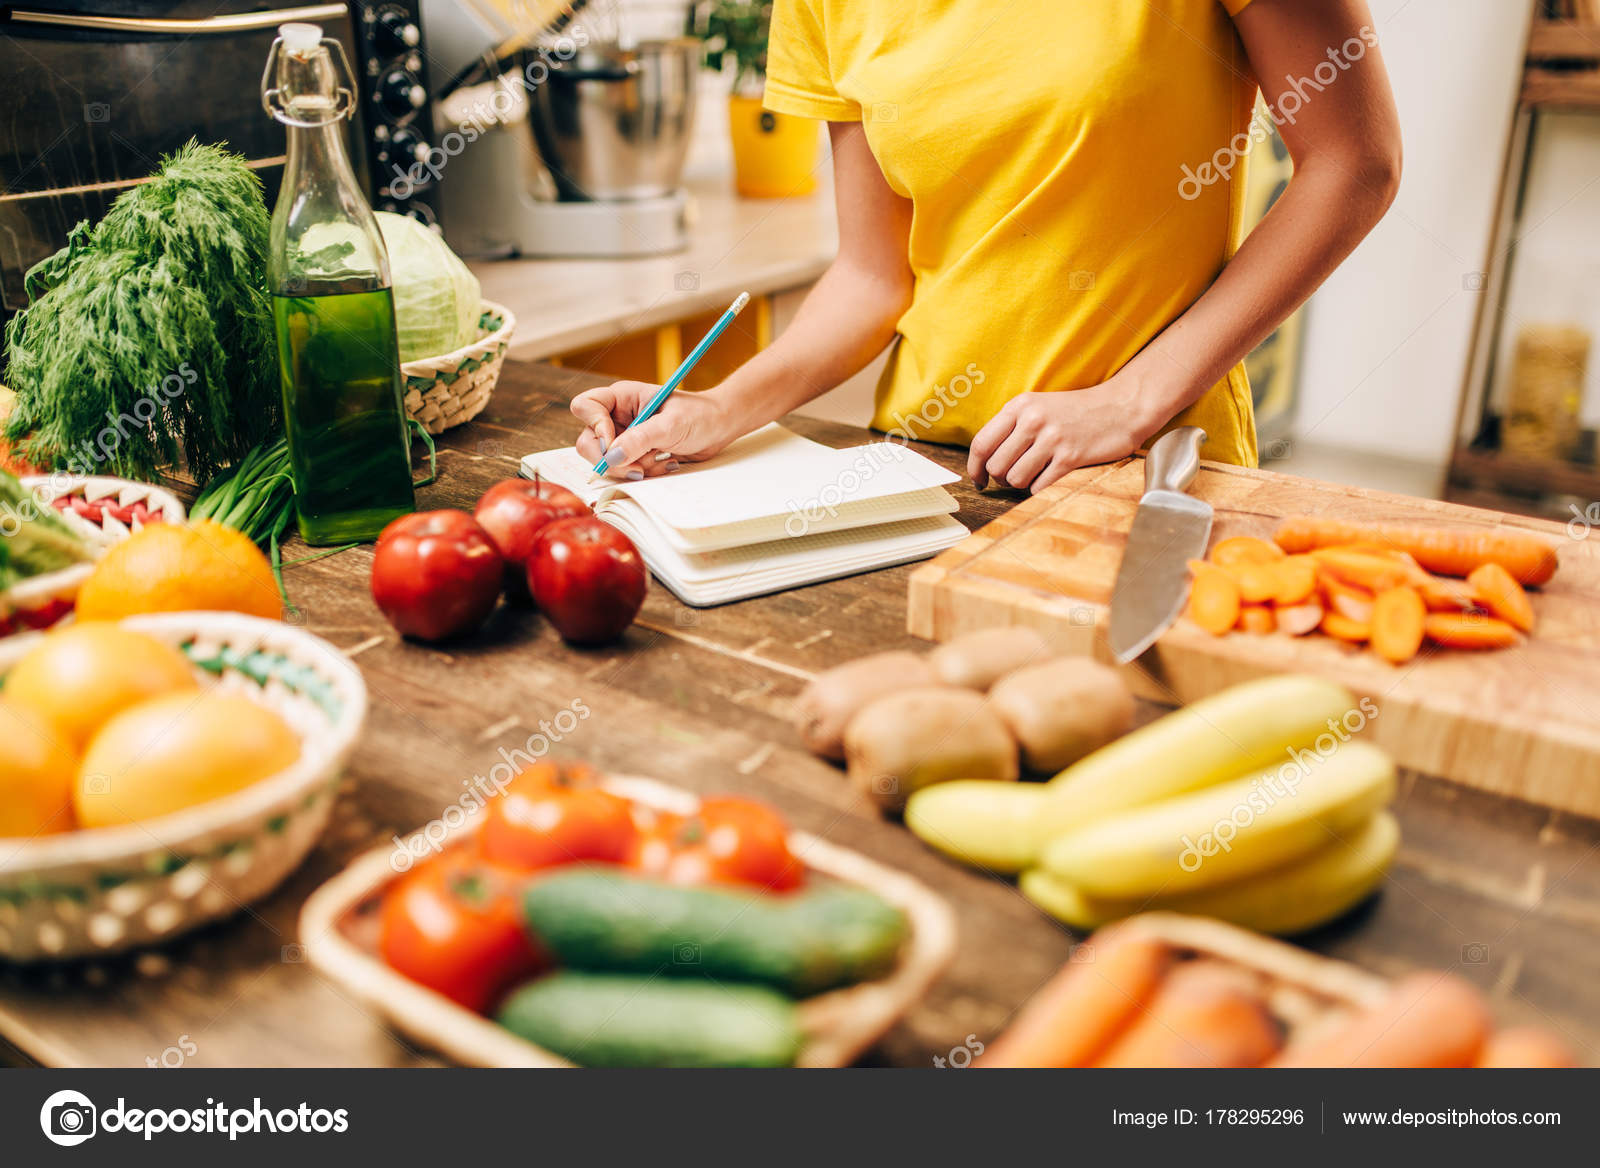 Young woman cooking kitchen writing recipe book healthy food young woman cooking kitchen writing recipe book healthy food vegetarian stock photo forumfinder Image collections